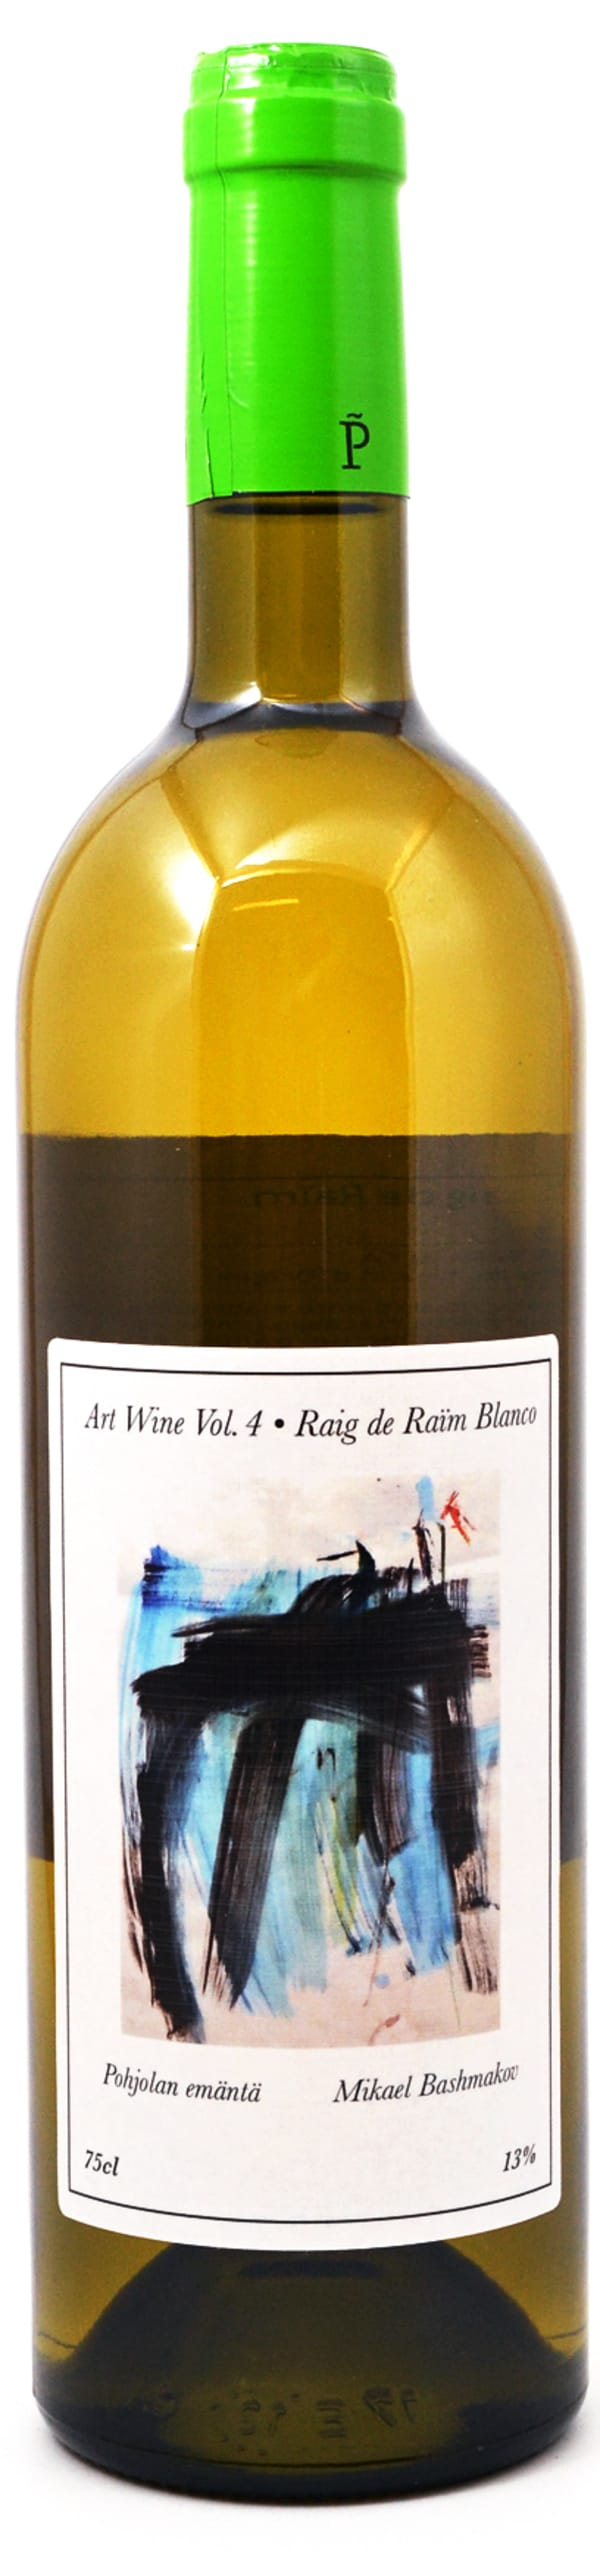 Raig de Raim Art Wine Vol. 4 2015